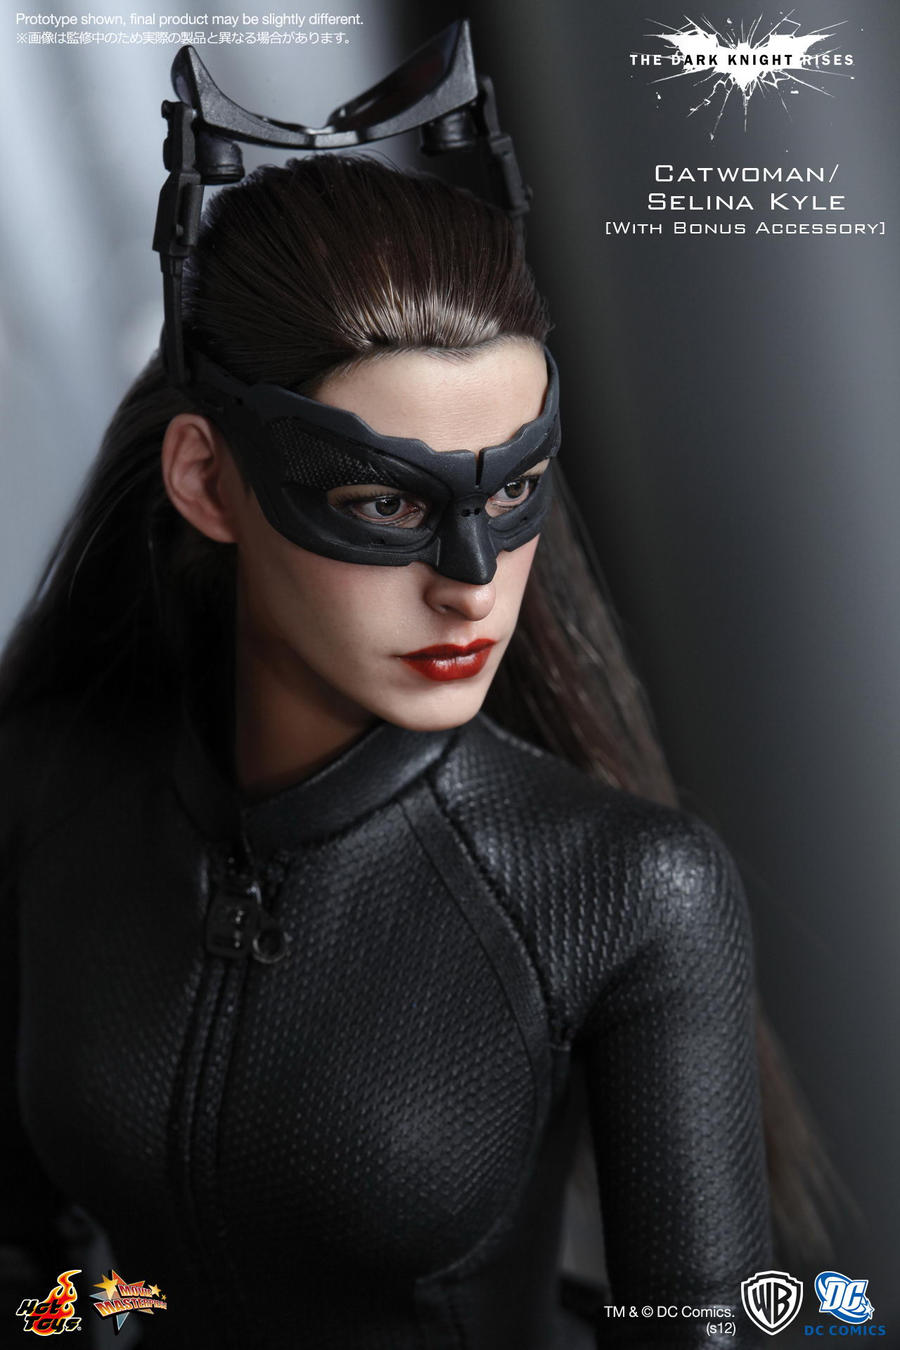 Catwoman Anne Hathaway by joinpoint on DeviantArt